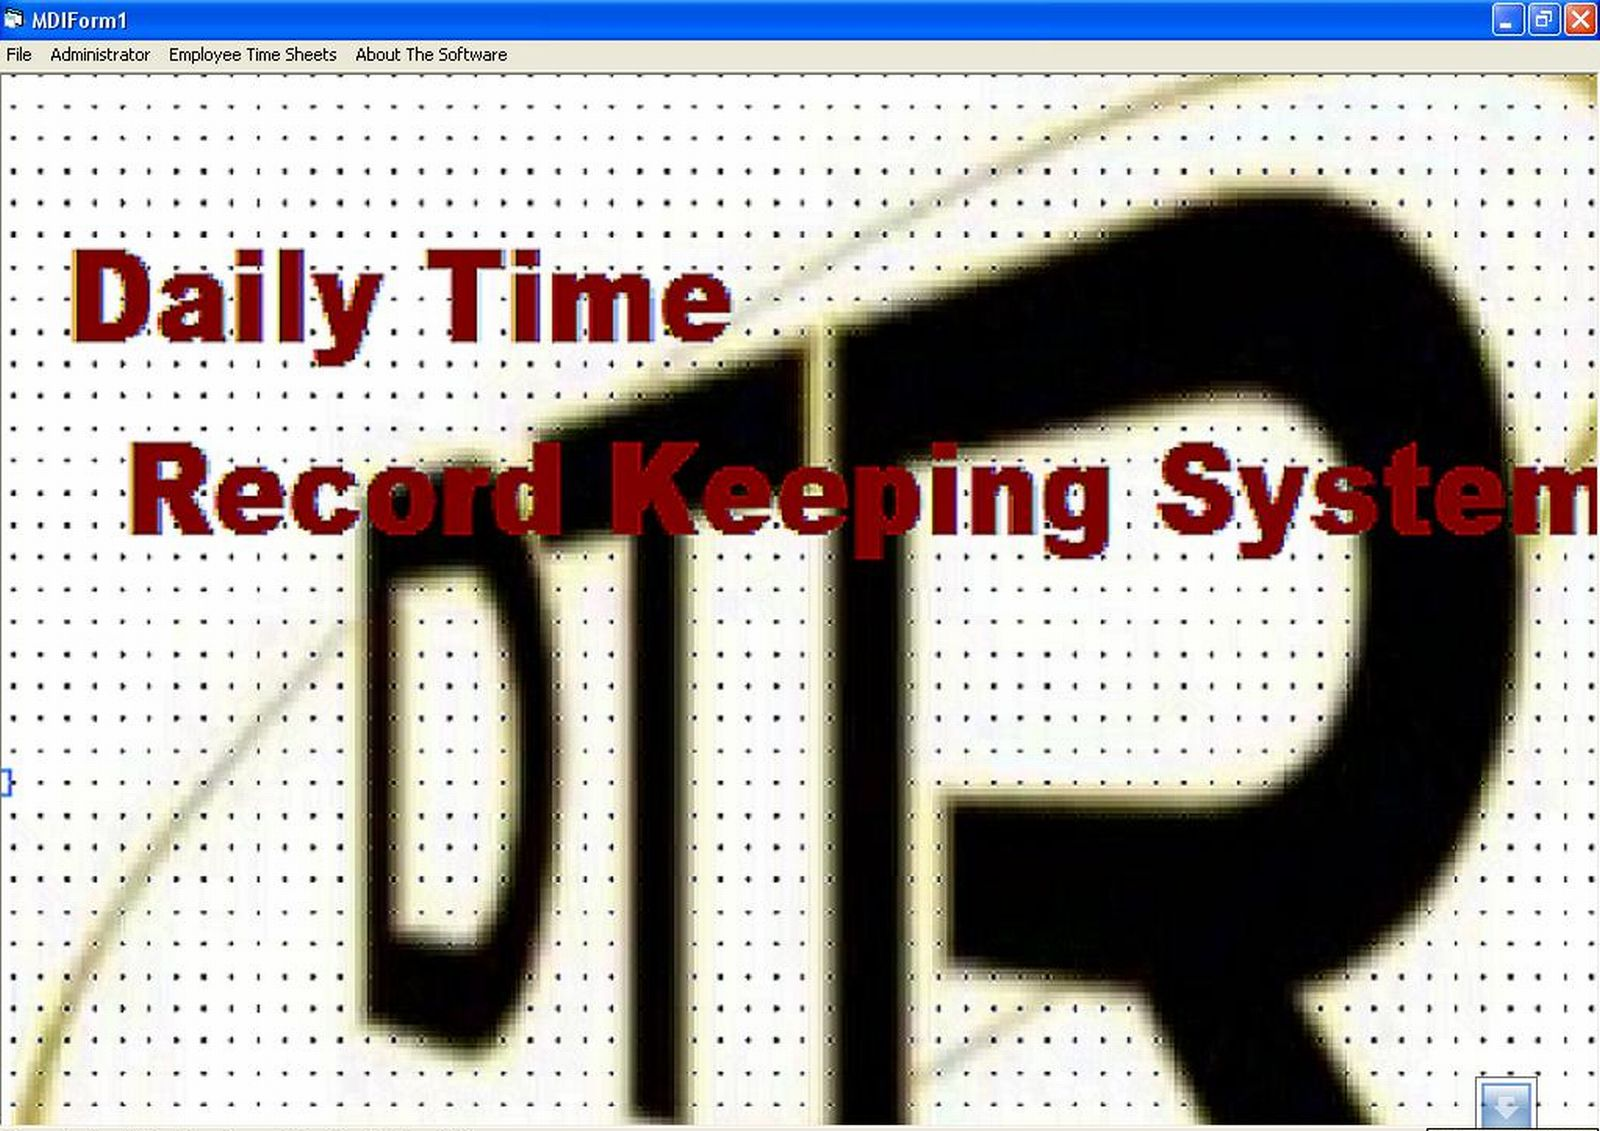 Attendance and daily time record system